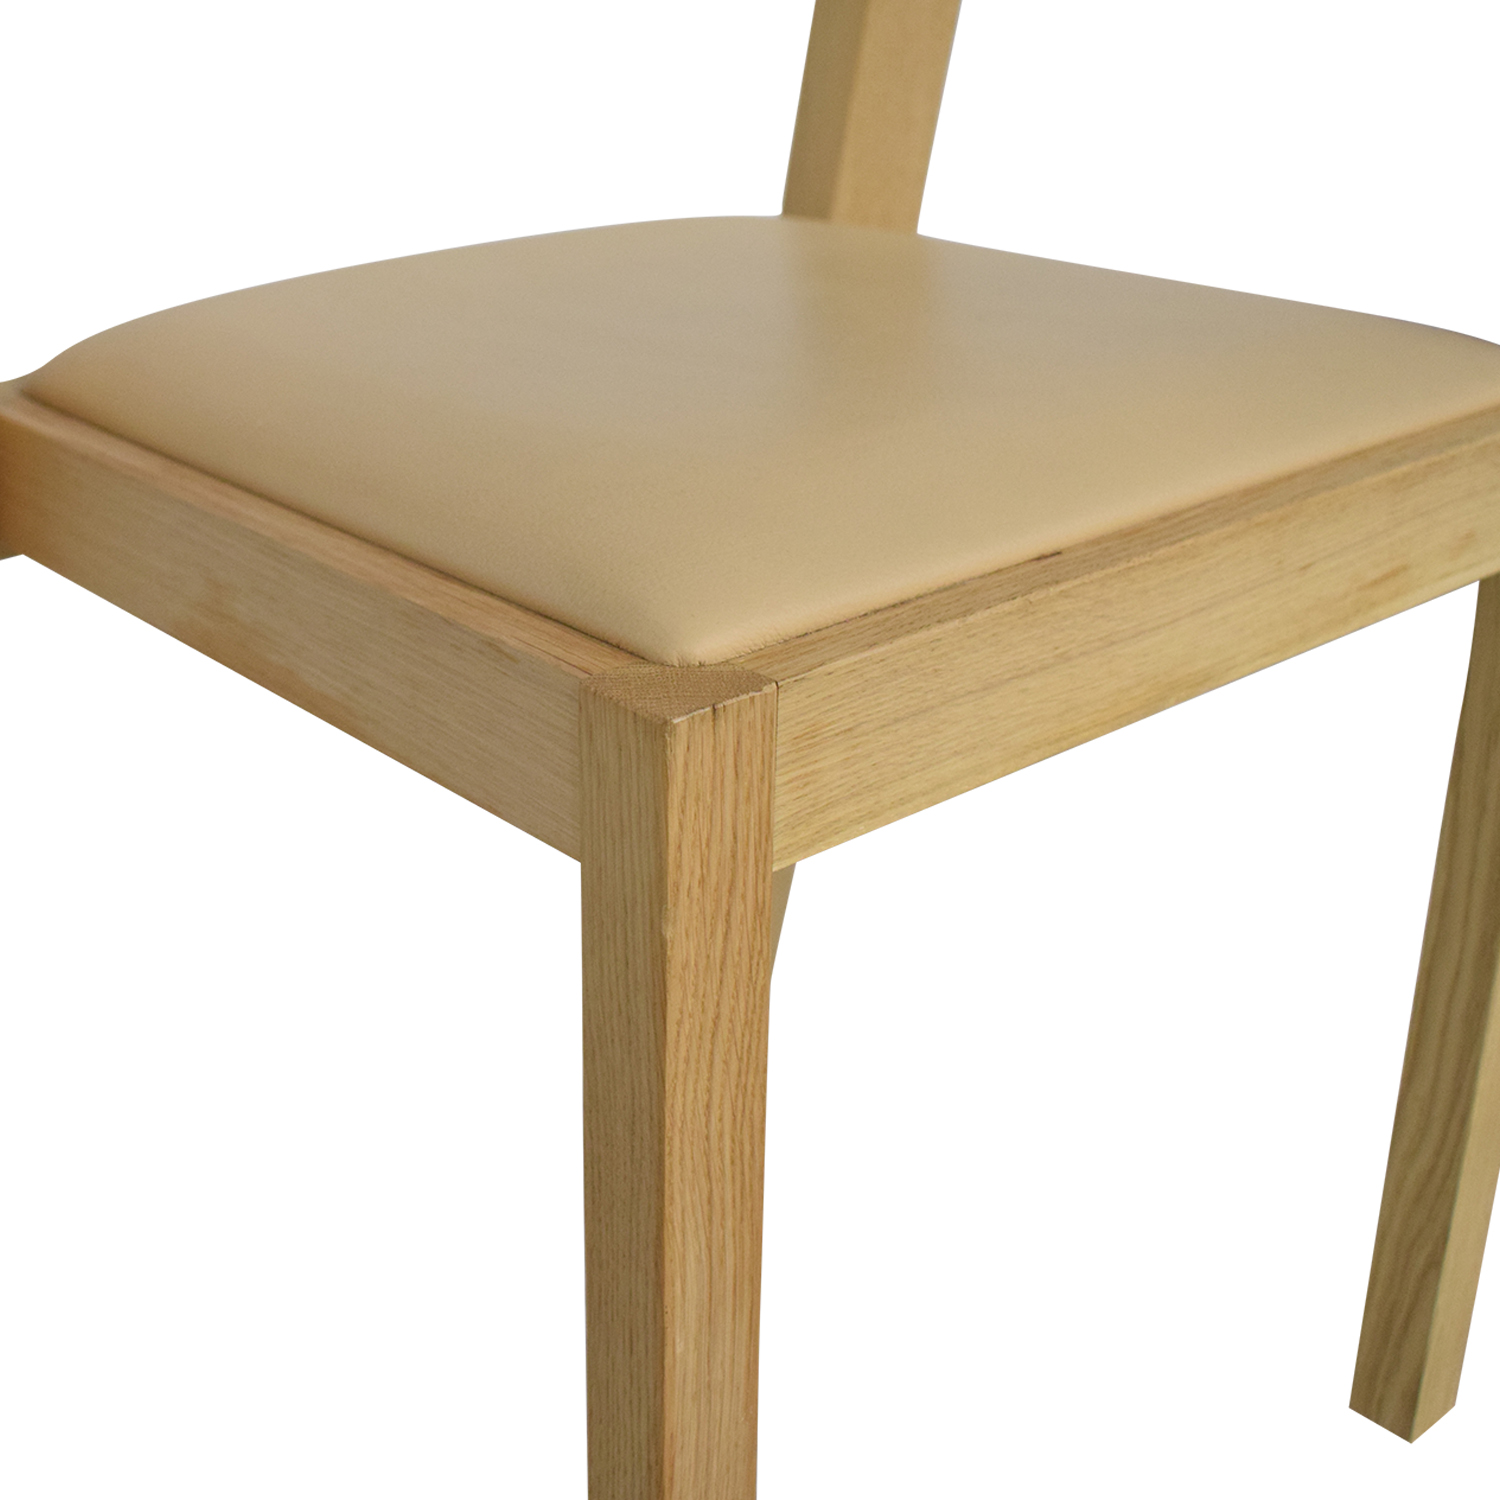 shop Profile Chair Designed by Matthew Hilton for Case Design Within Reach